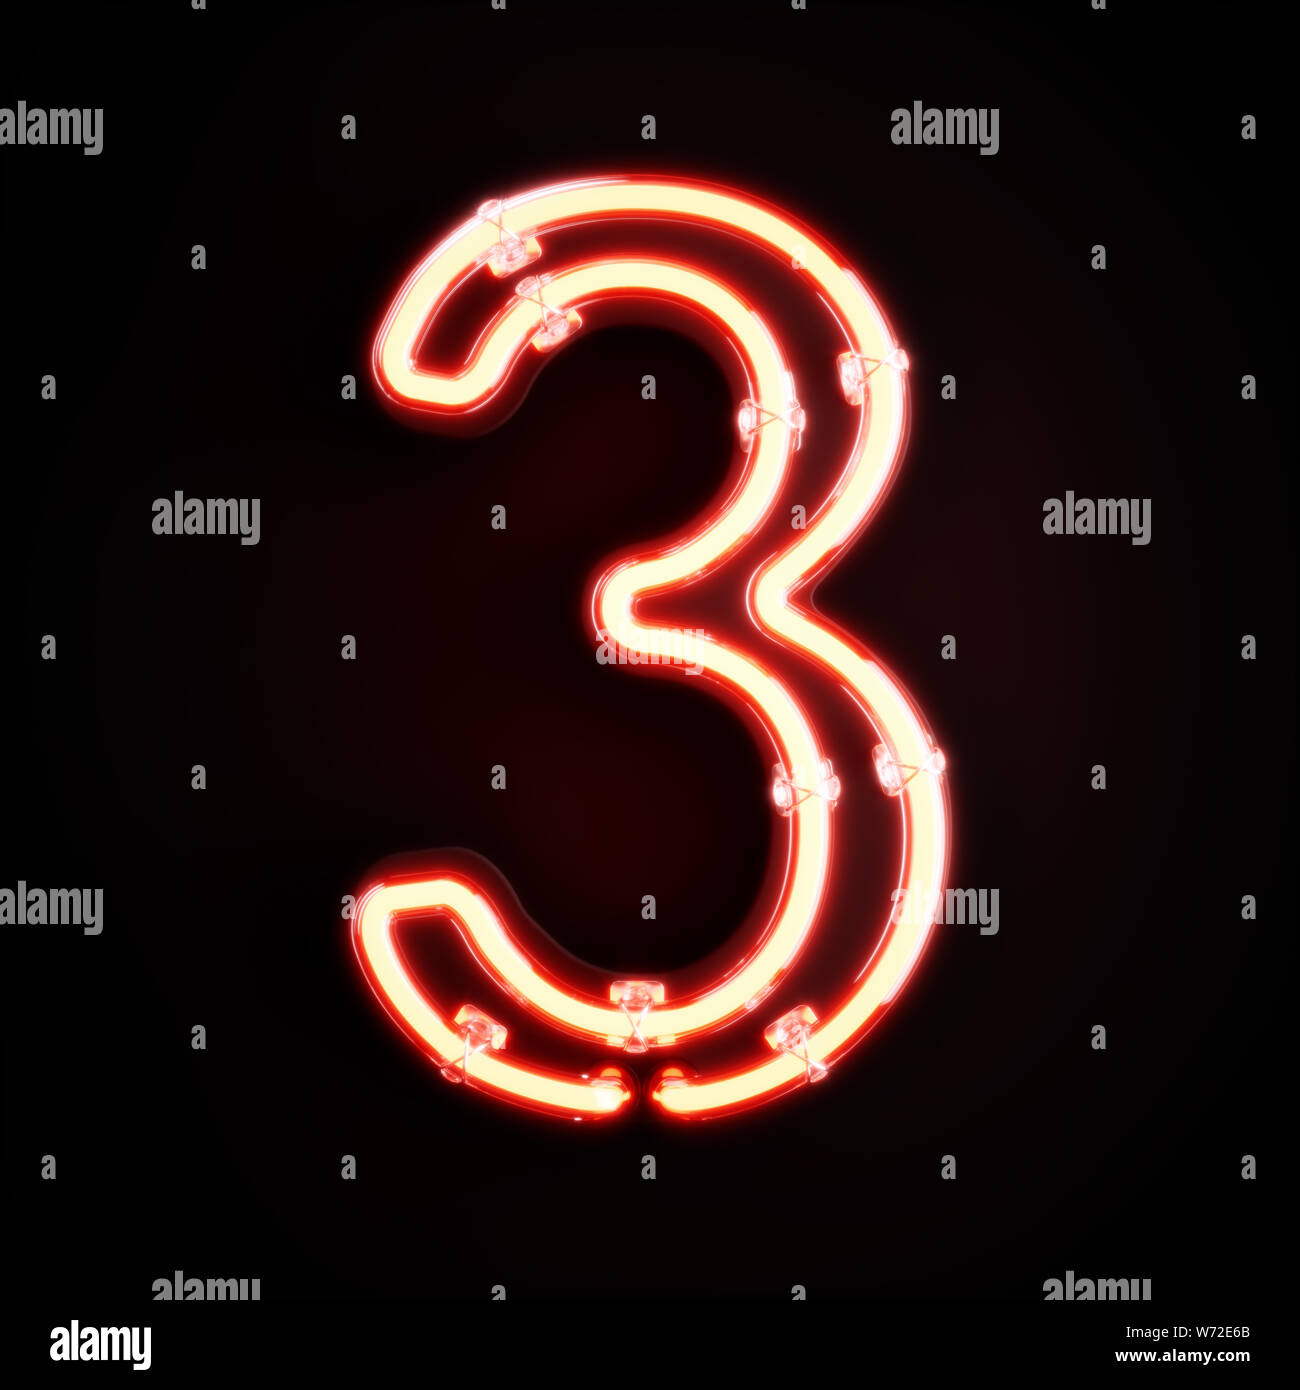 Neon light digit alphabet character 3 three font  Neon tube